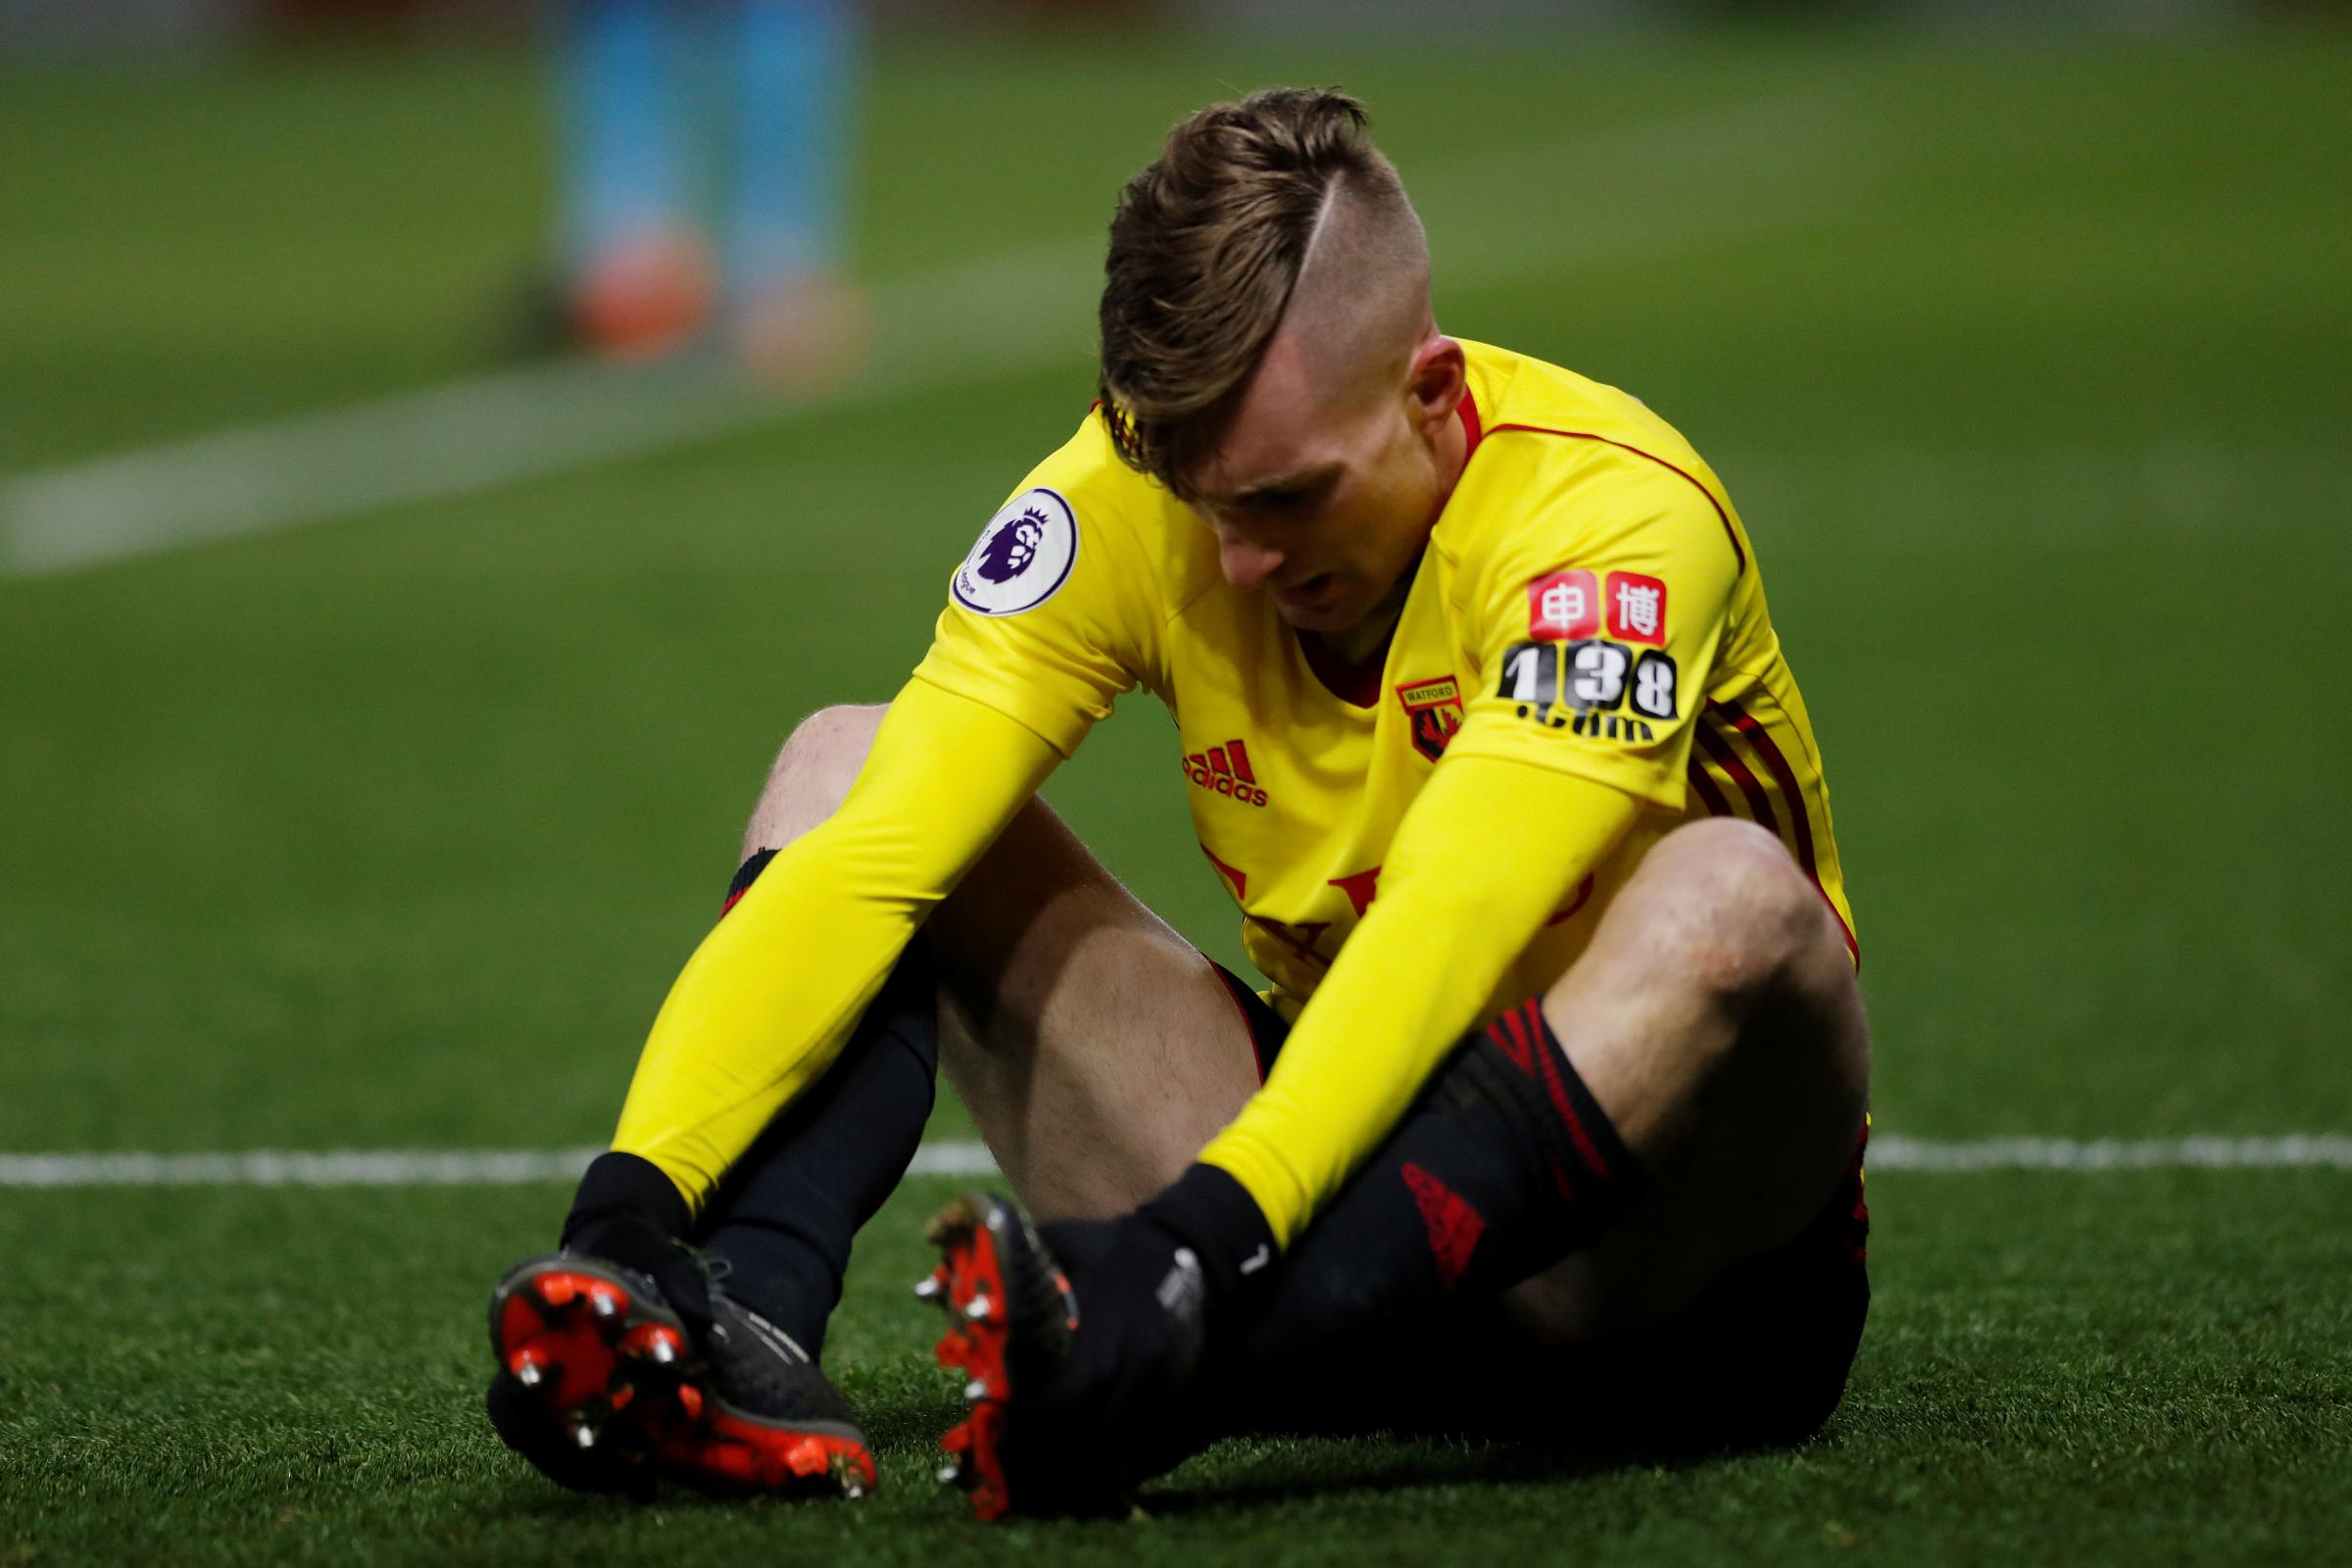 Gerard Deulofeu is yet to feature for Watford this season. Picture: Action Images